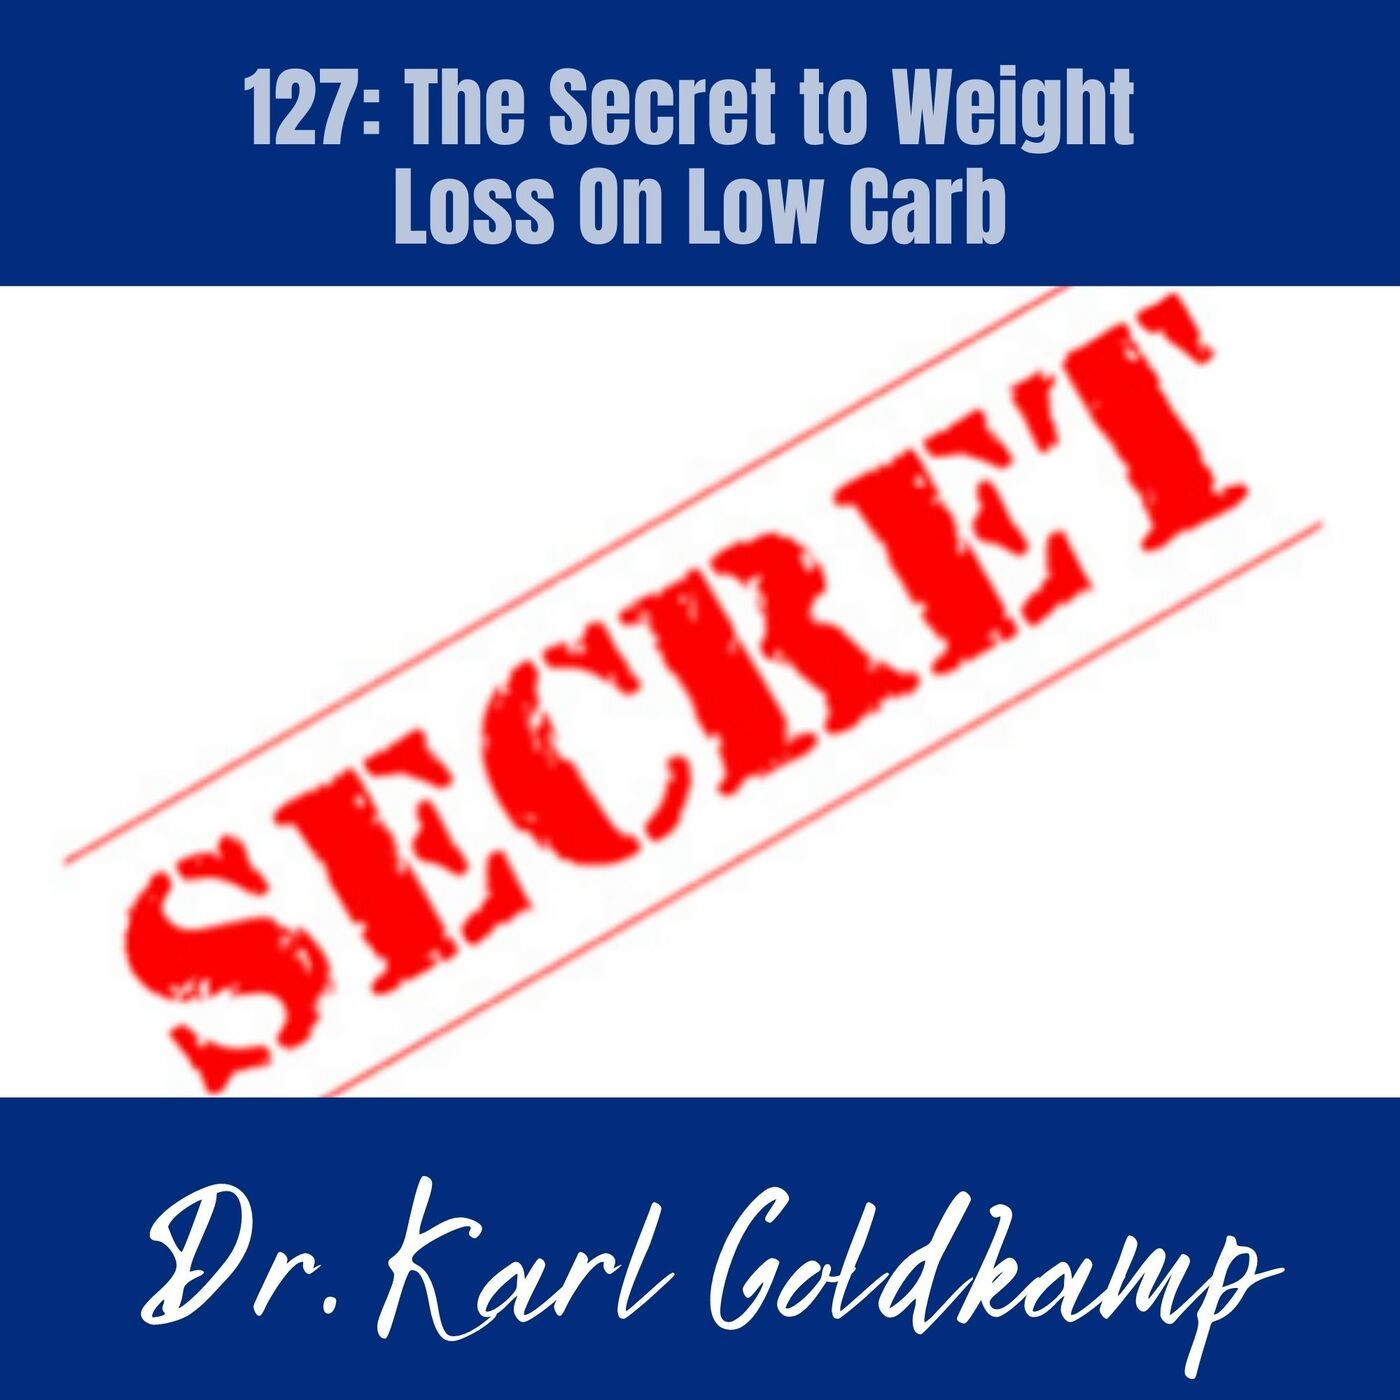 127: The Secret to Weight Loss On Low Carb